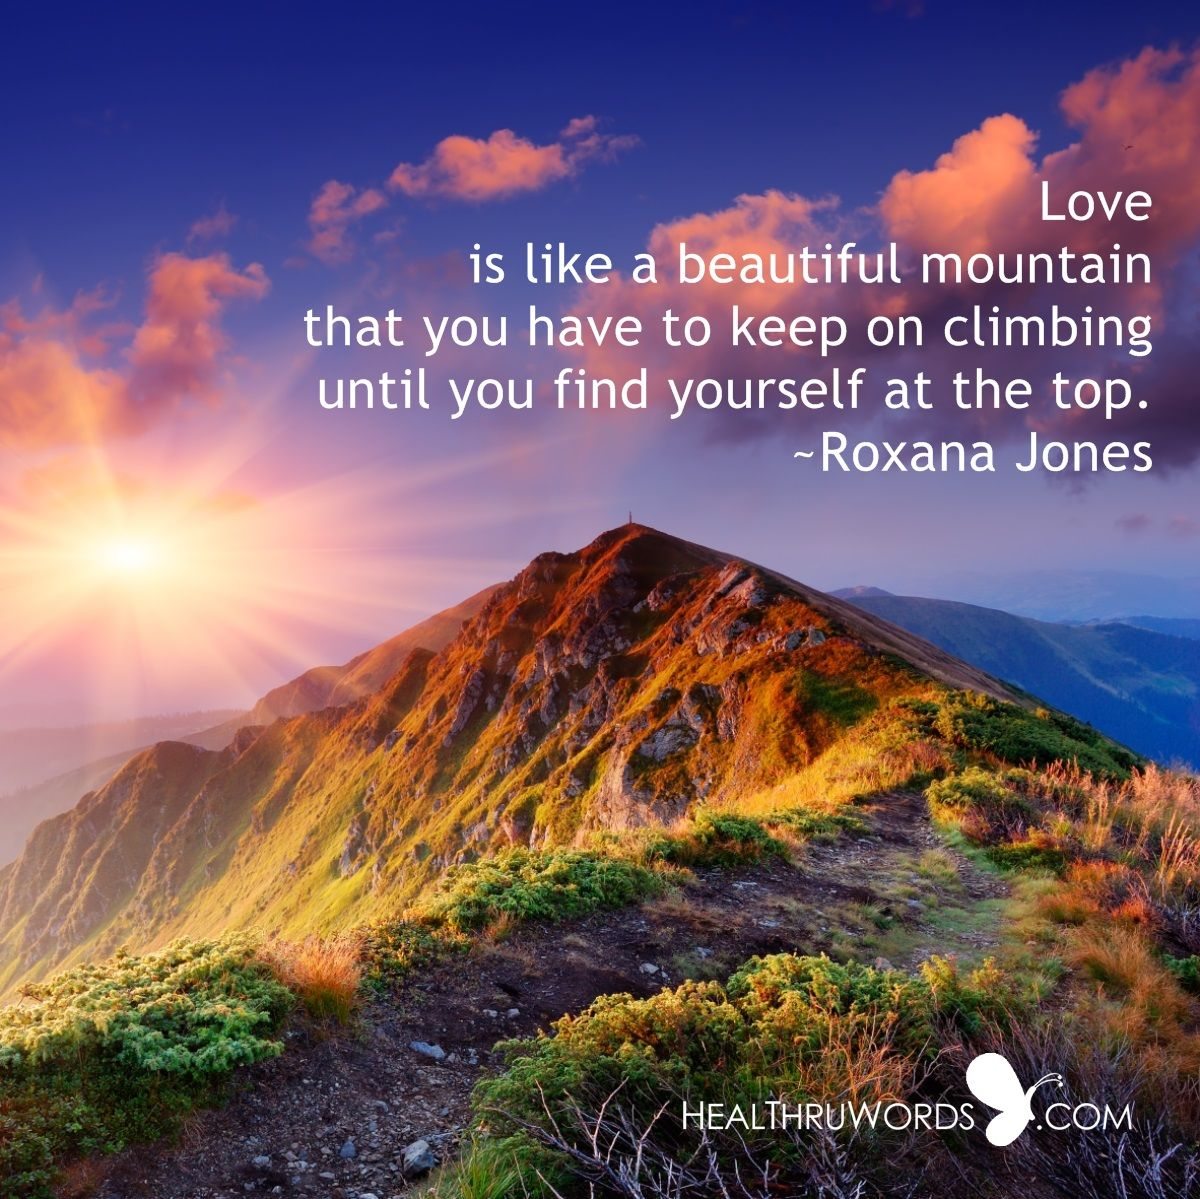 The Mountain Of Love Inspirational Images And Quotes Mountain Images Beautiful Landscapes Mountain Landscape